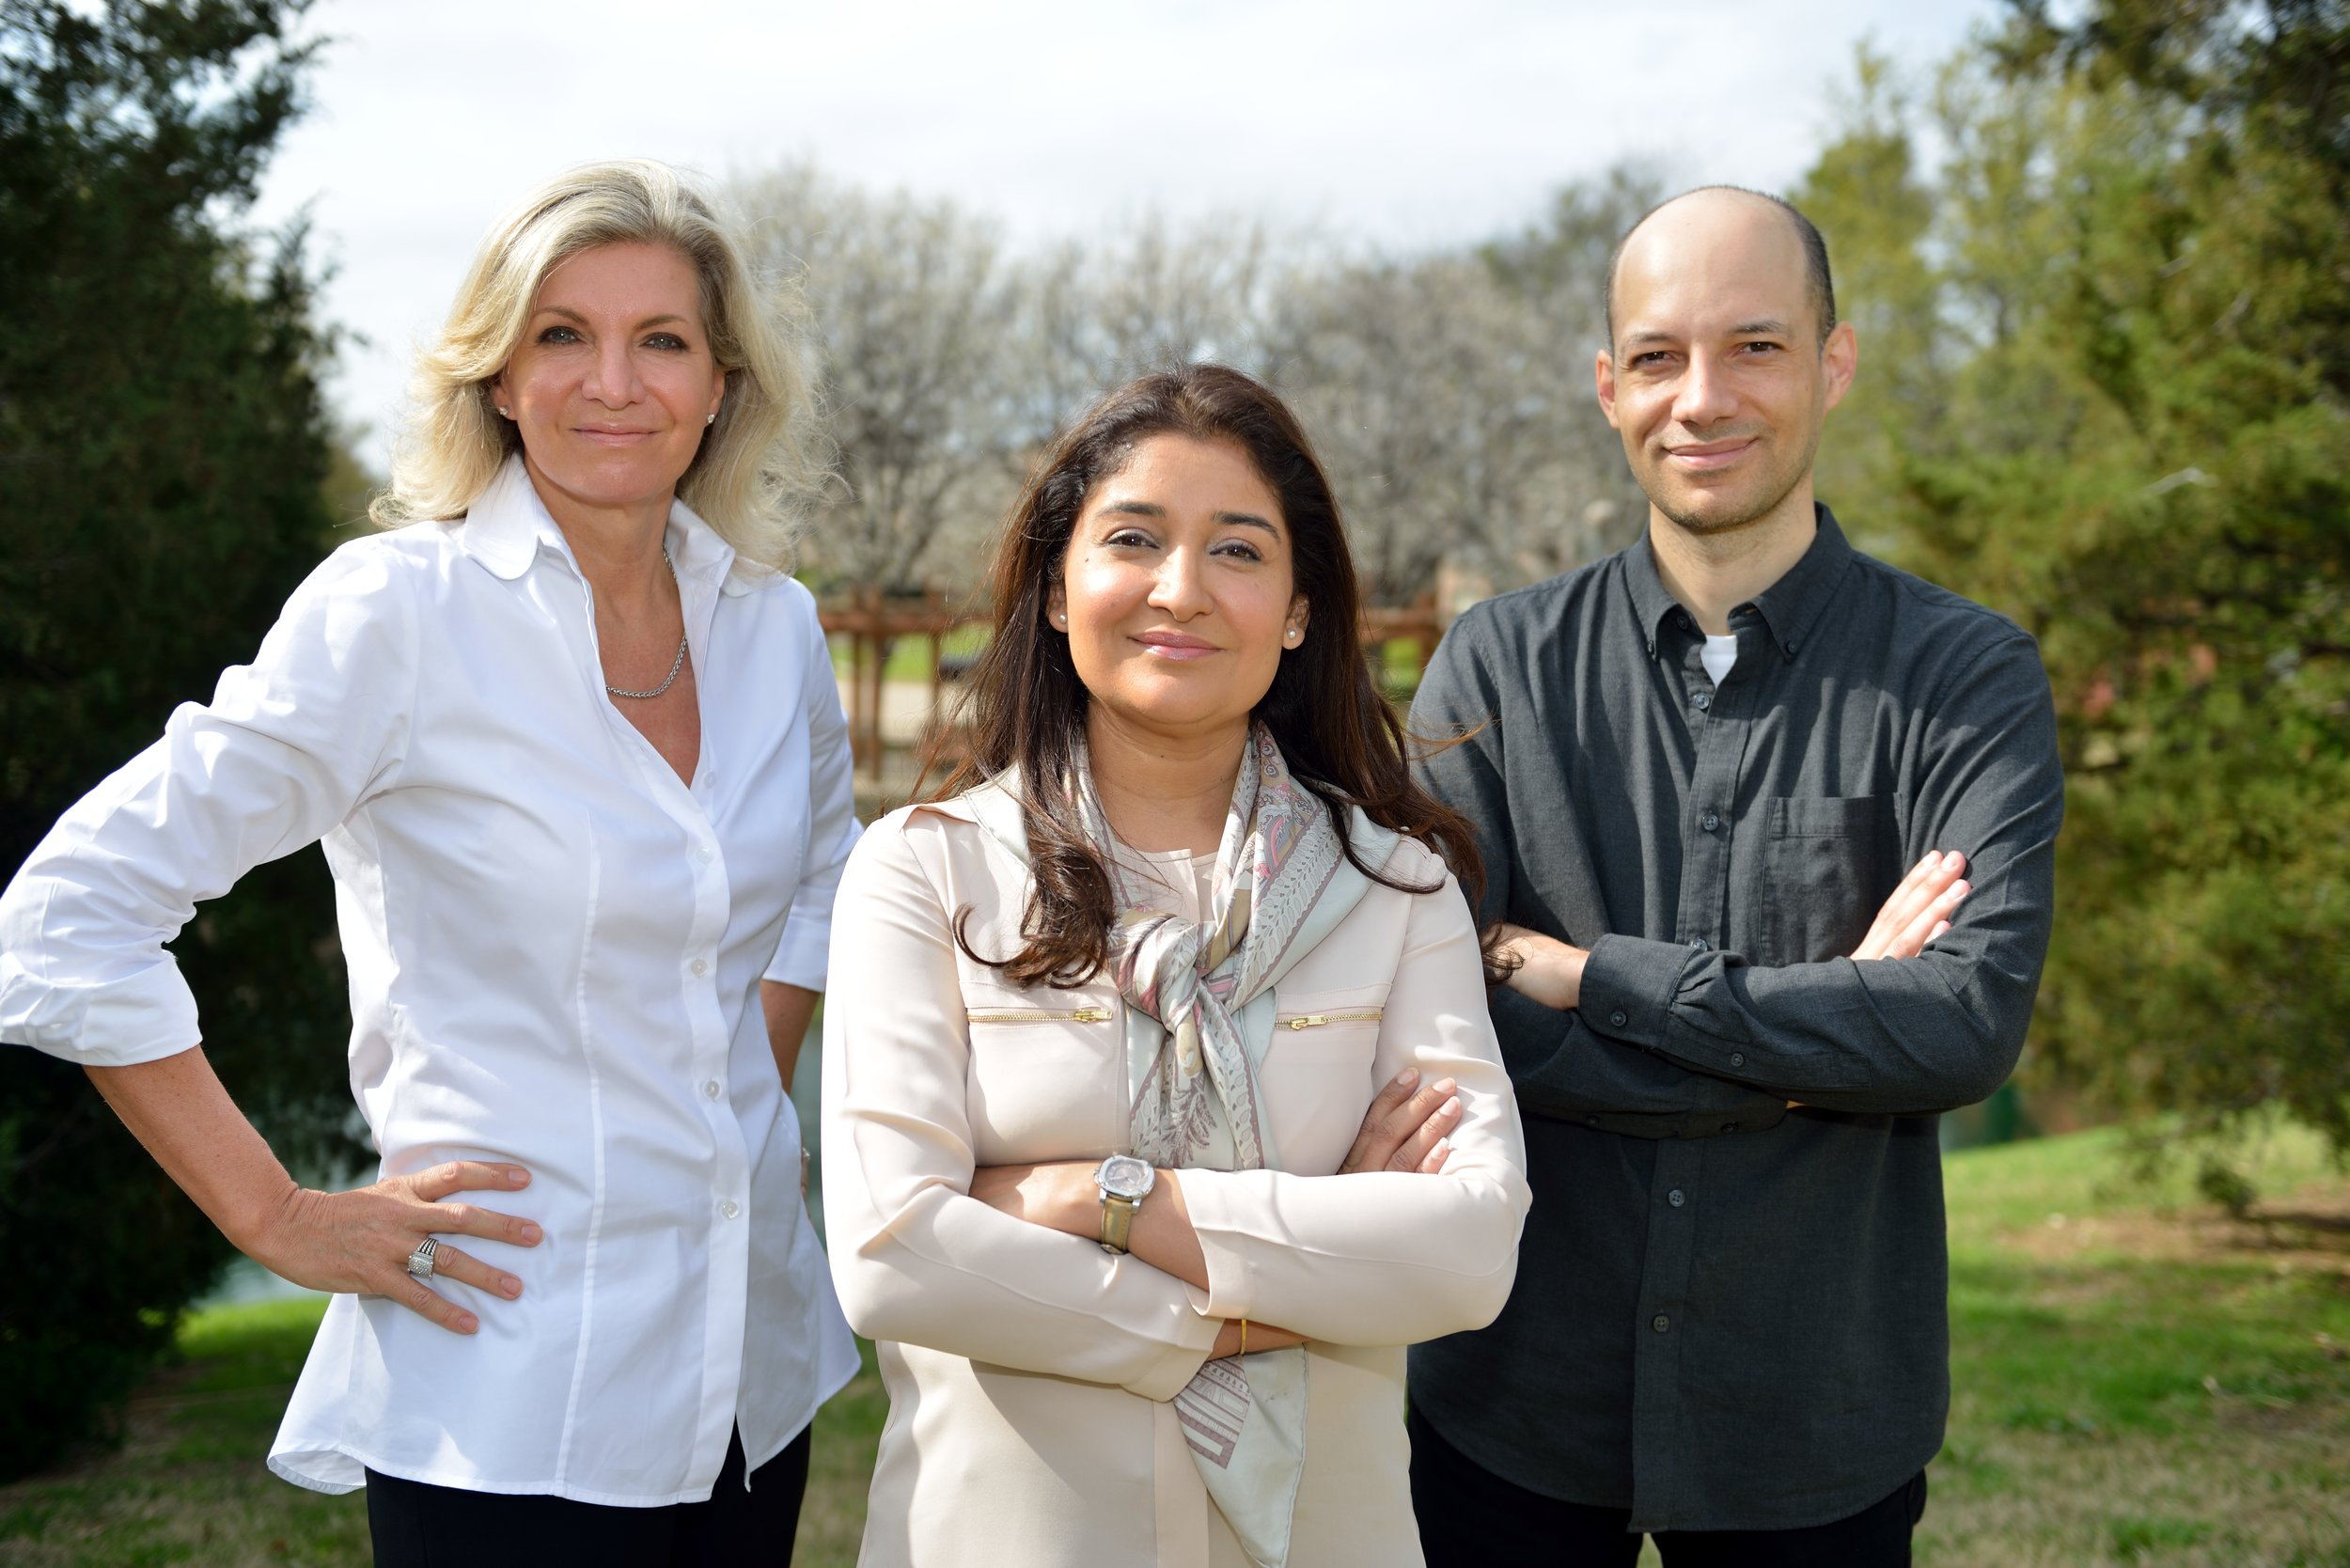 Advisory Team - Pictured from Left to Right(Advisor) Sally Kennedy, Former CEO Publicis Dallas; Principal & CEO, The K Factor, LLC. (Founder) Aassia Haq.(Advisor) Cristiano Oliveira, Founder & CEO of Olivia AI; Former Co-Founder & CTO Spring Wireless(Advisor) (Not Pictured). Bruce MacMillan, Former CEO, Meeting Professionals International; CEO Bandwidth Management and Consulting.